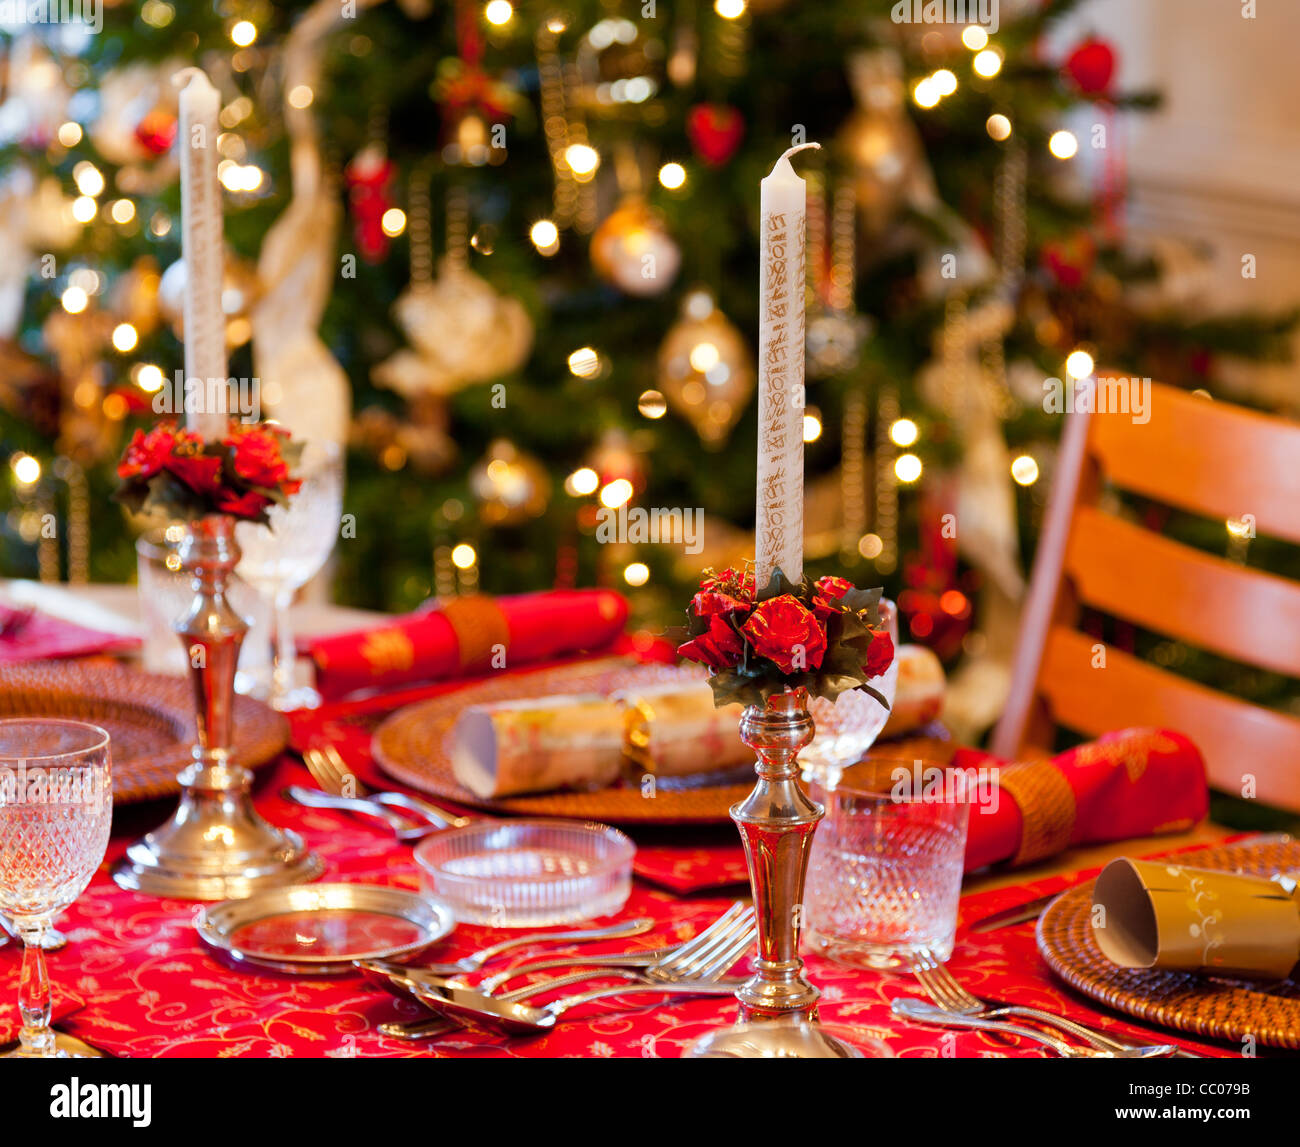 Christmas table setting for Christmas dinner with candles, crackers ...